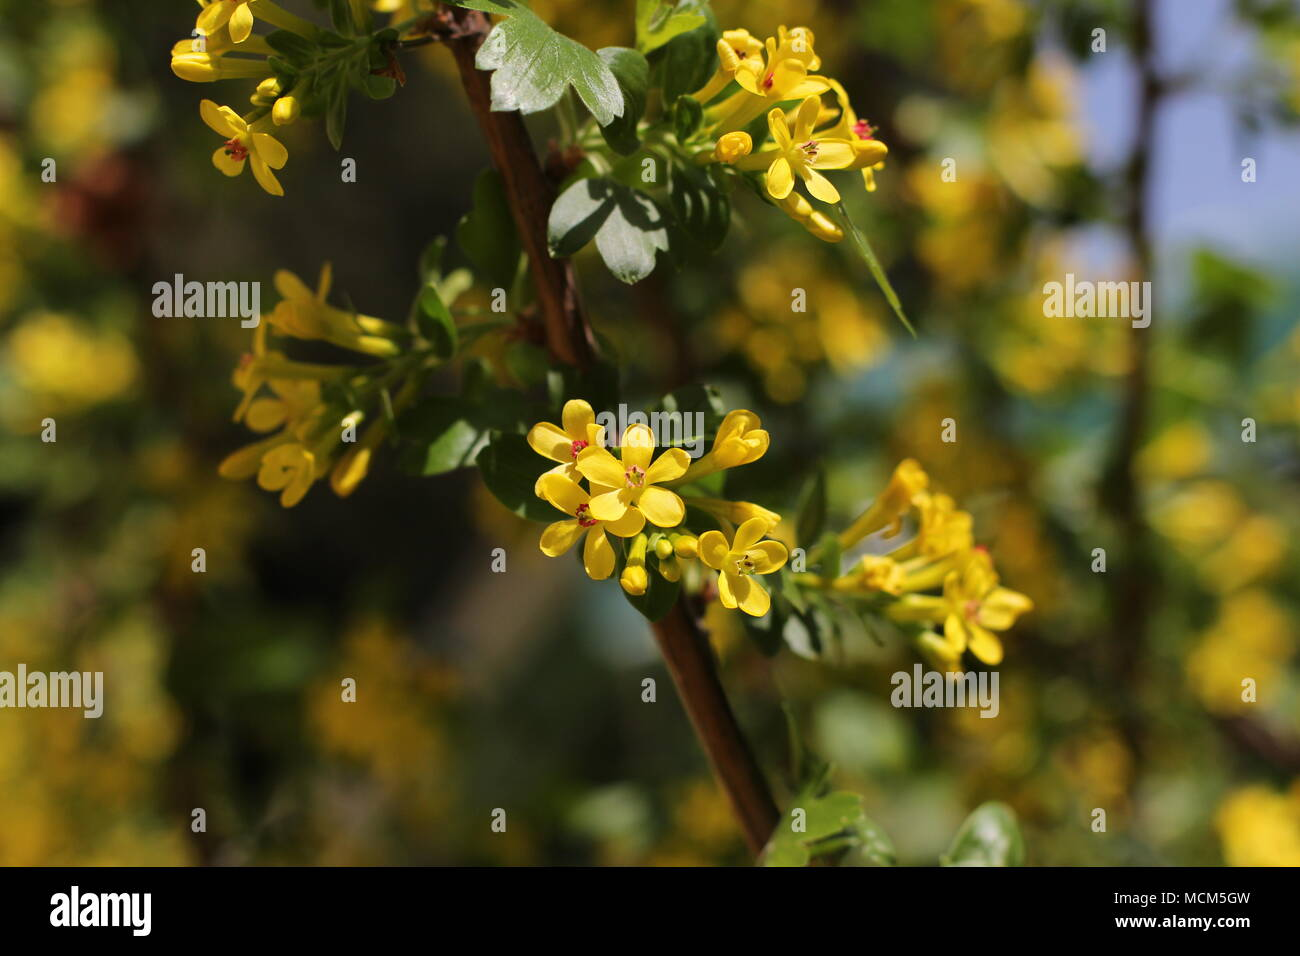 Yellow Flowers Of Golden Currant Ribes Aureum Stock Photo